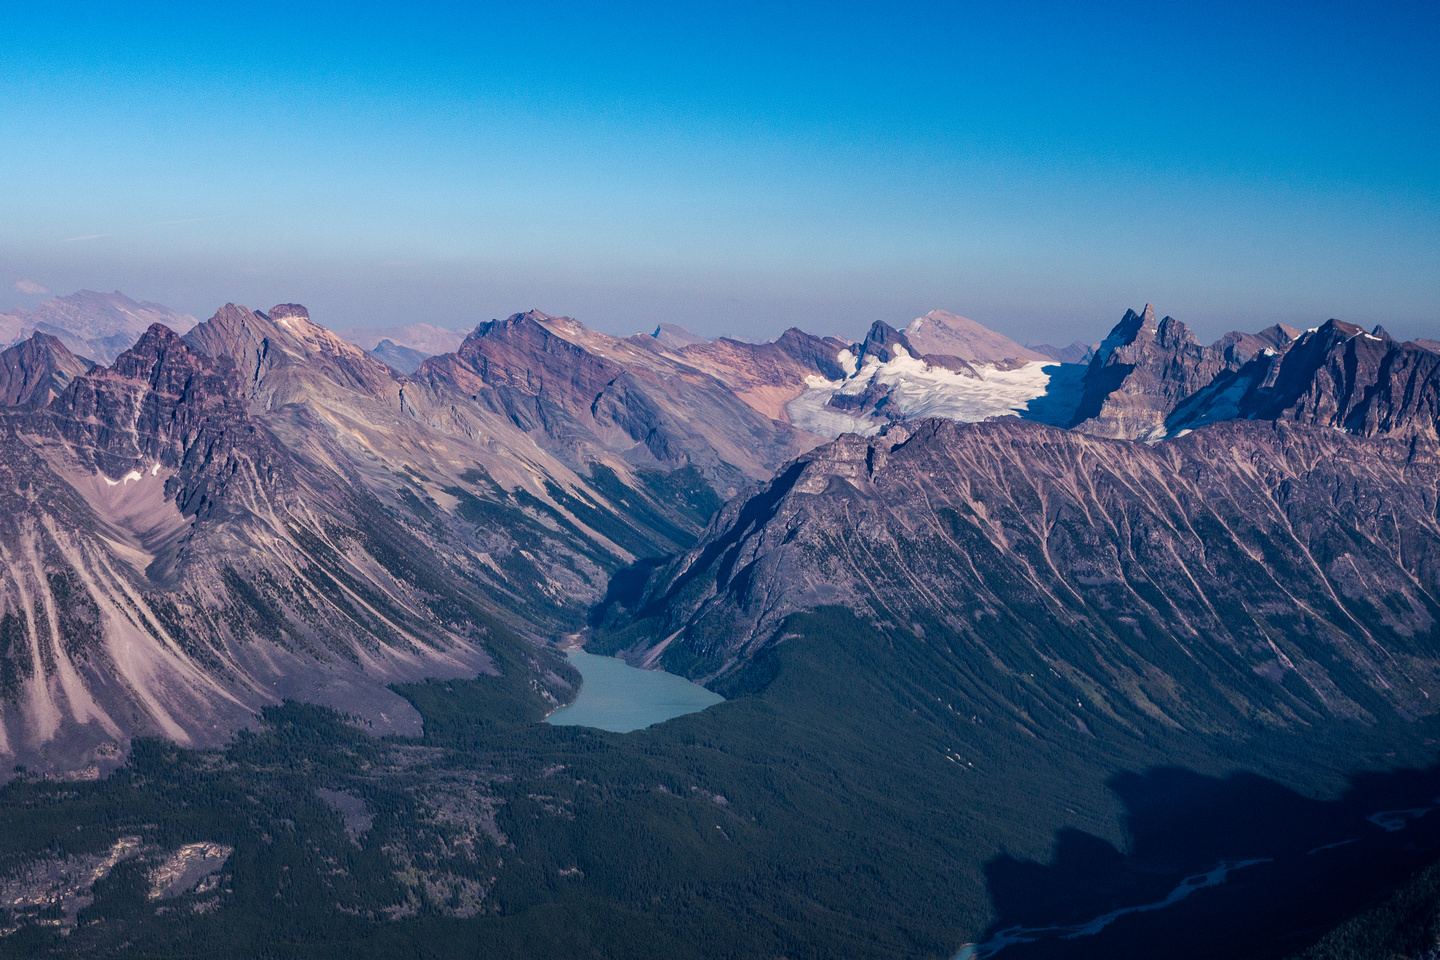 Looking over Gong Lake towards Gong Peak and Glacier with Sunwapta and Smythe to the right and Confederation, Weiss and Mitchell to the left.